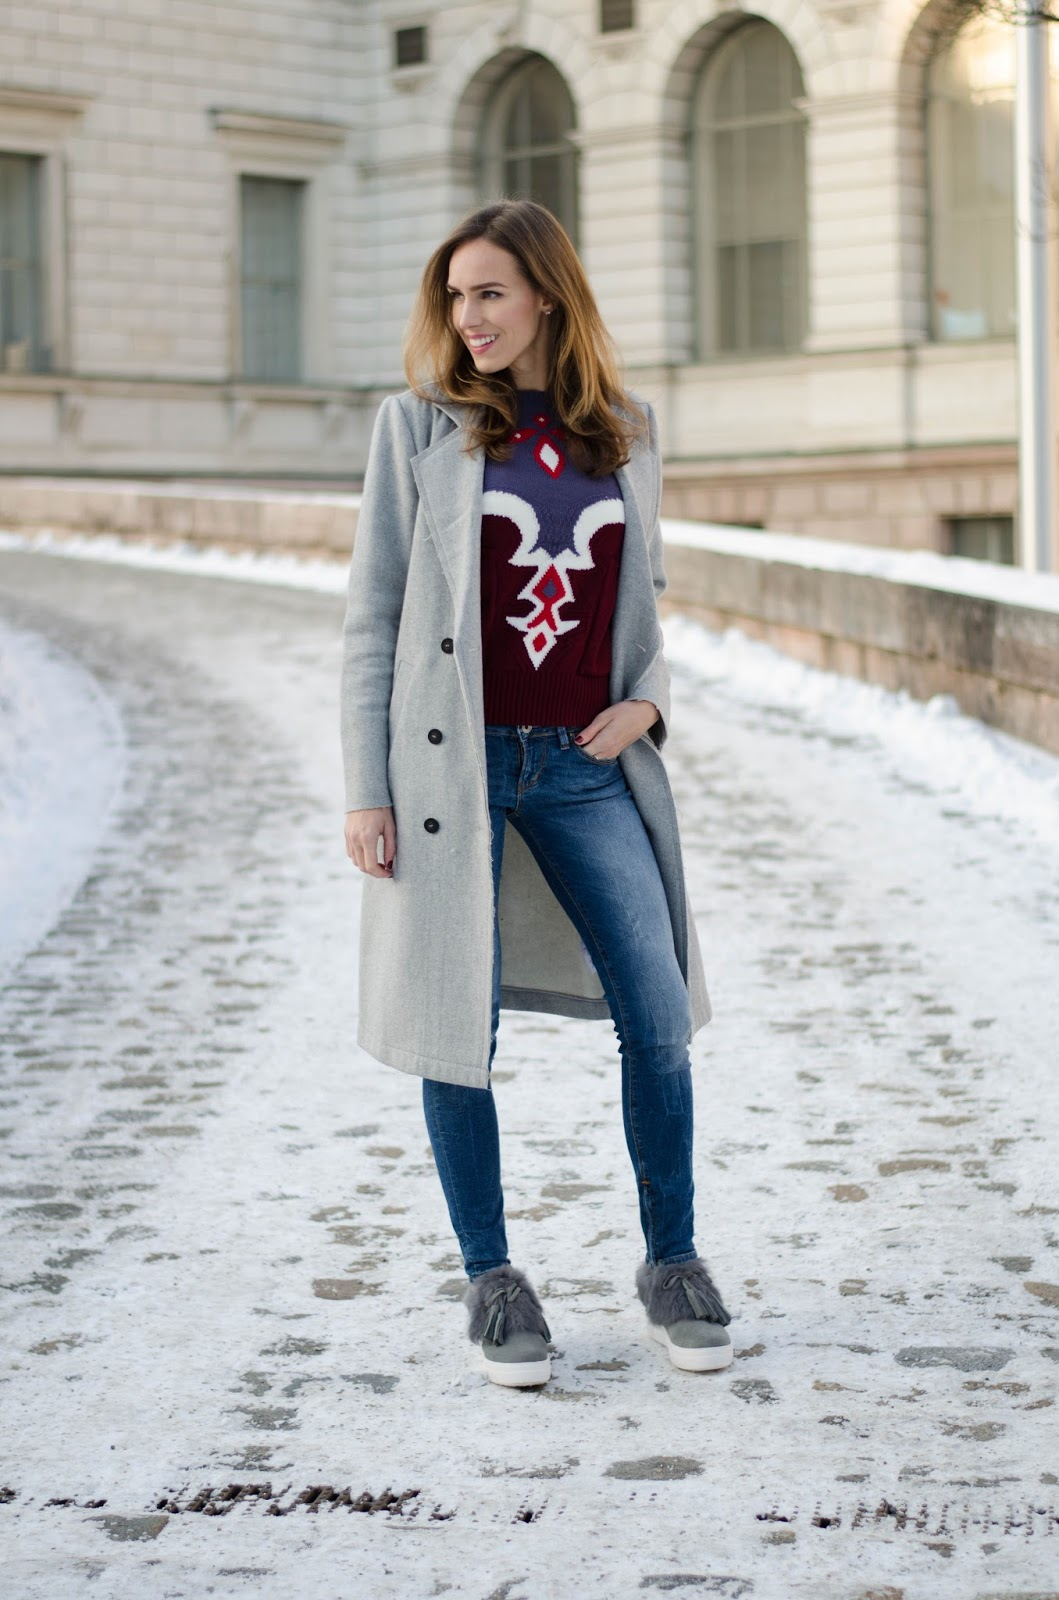 kristjaana mere gray wool coat bordeaux sweater fur sneakers winter outfit